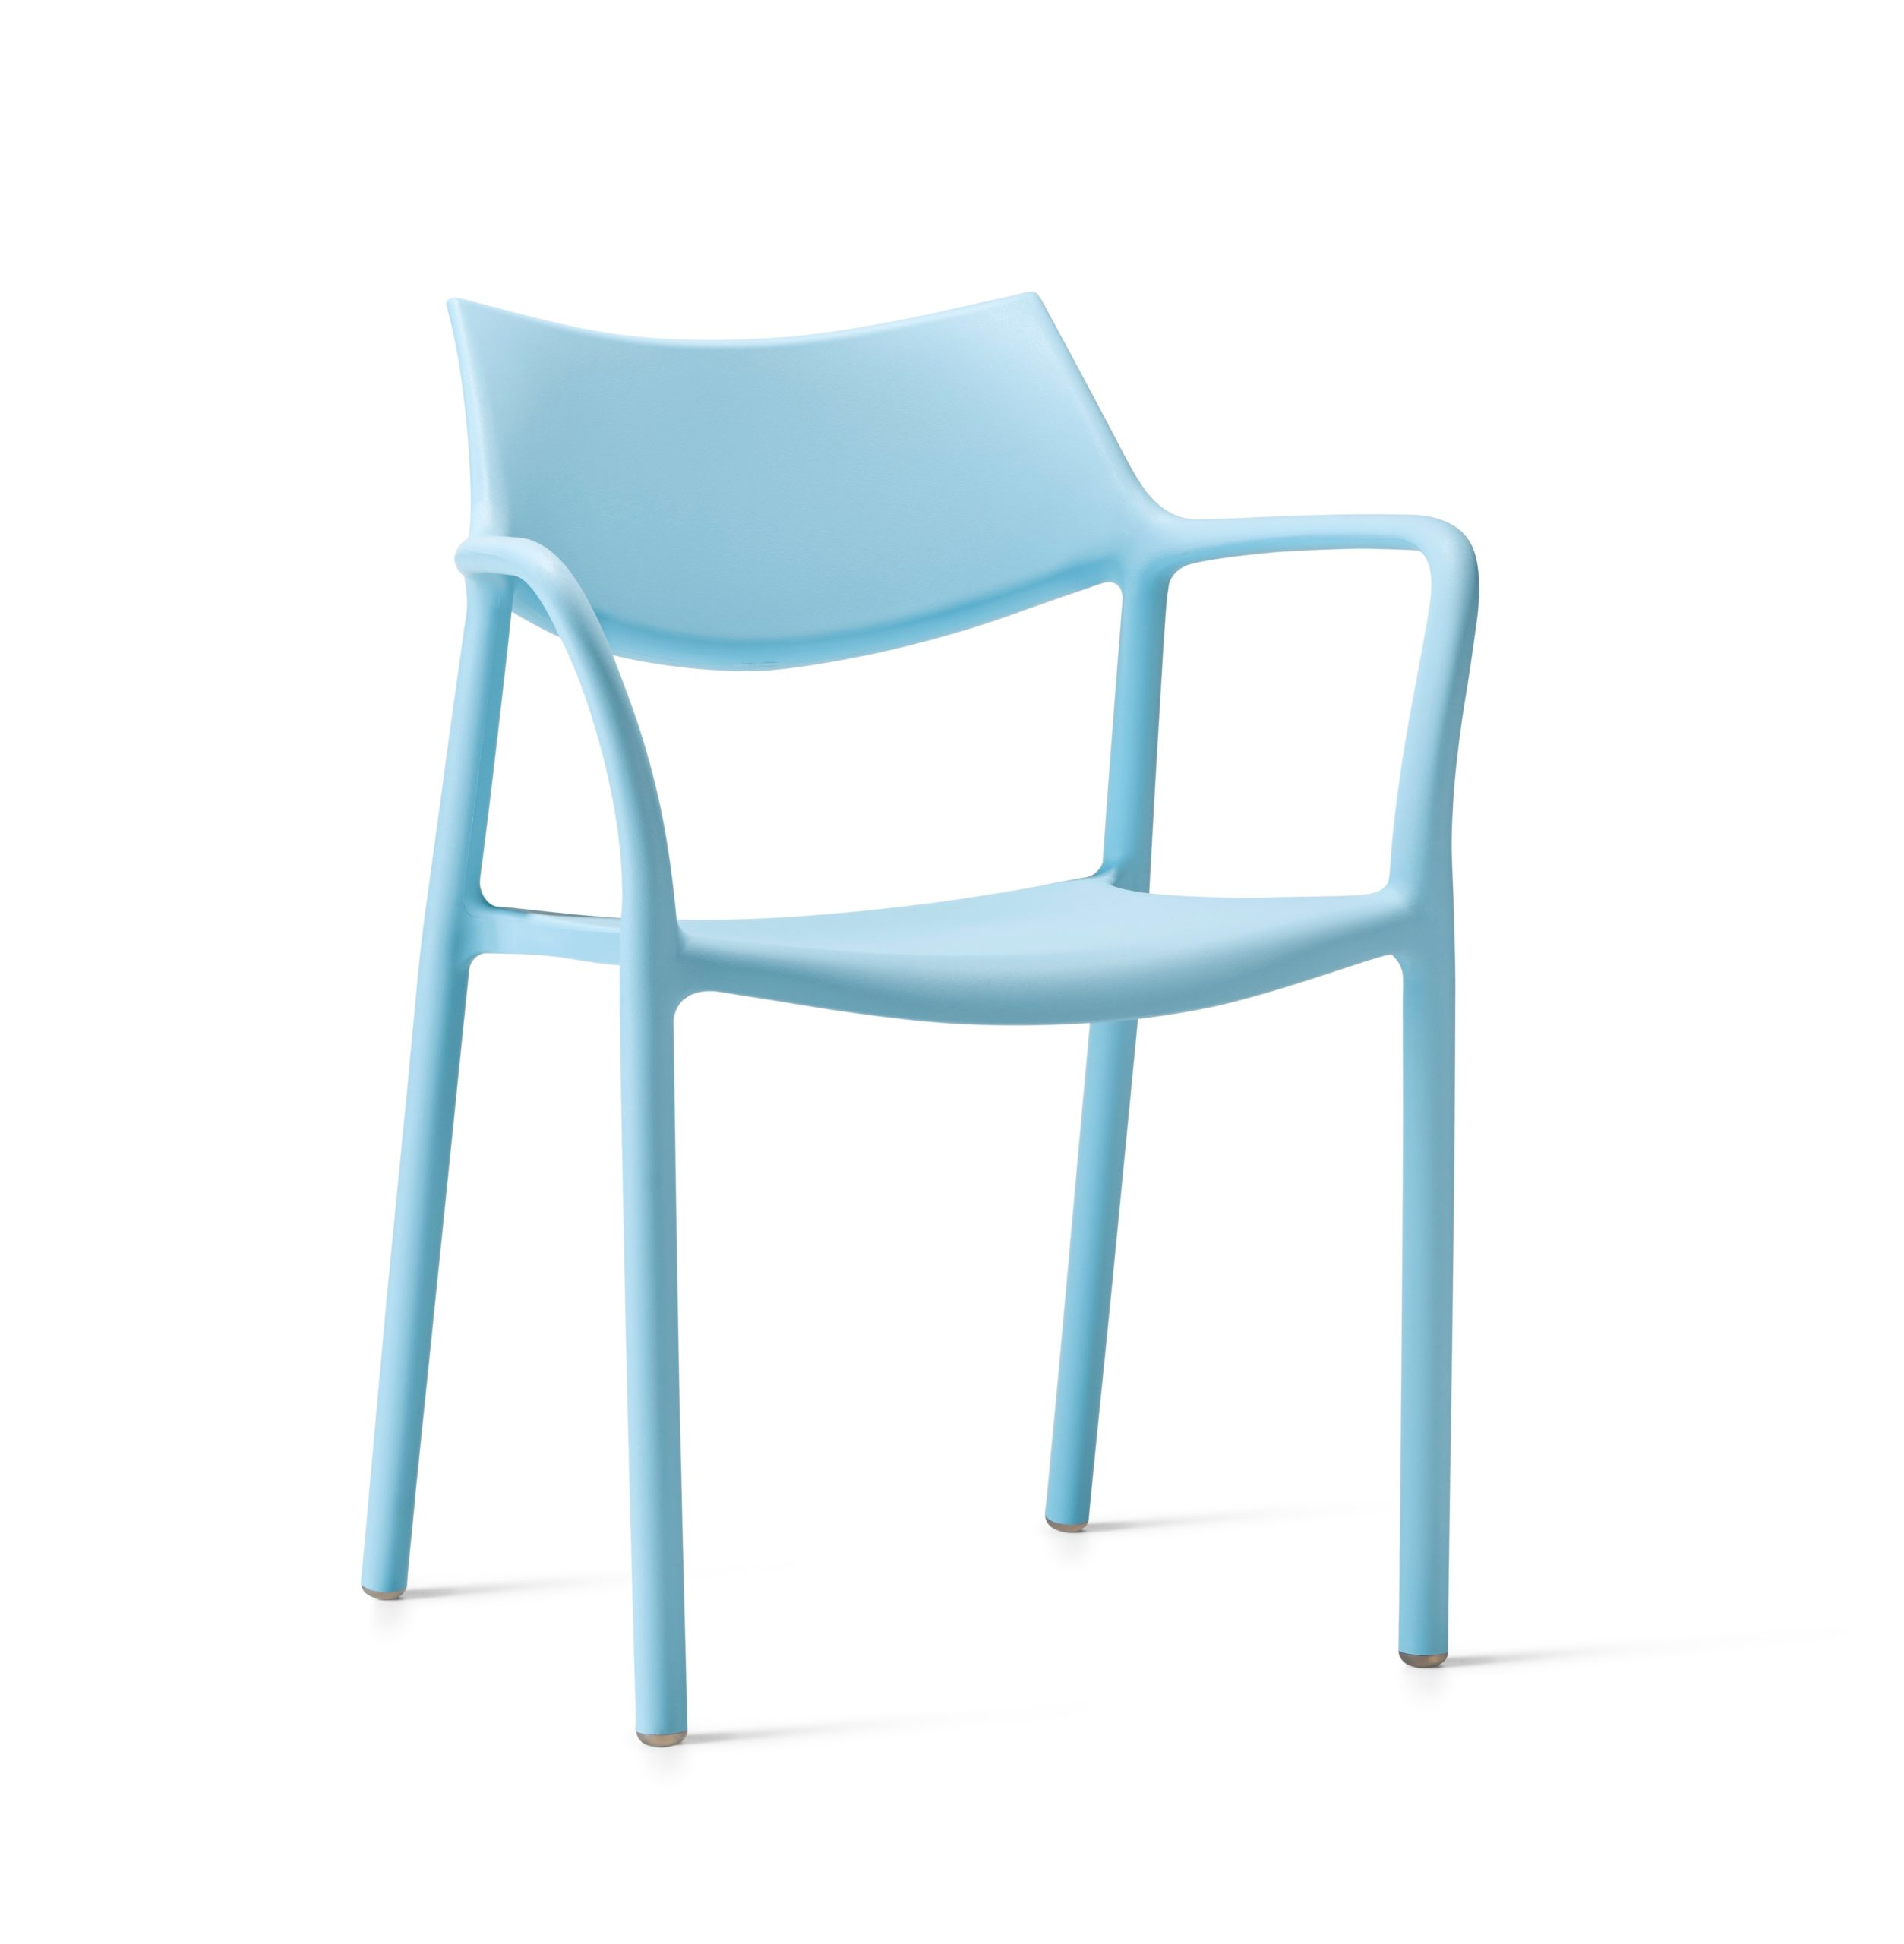 <p>Outdoor Furniture Contemporary Collection – Madera Armchair – Light Blue.</p> <p> </p> <p>Chair for indoor and outdoor use available in a variety of vibrant colours, capturing essential features such as lightness, functionality, ergonomics and care for the environment.</p>